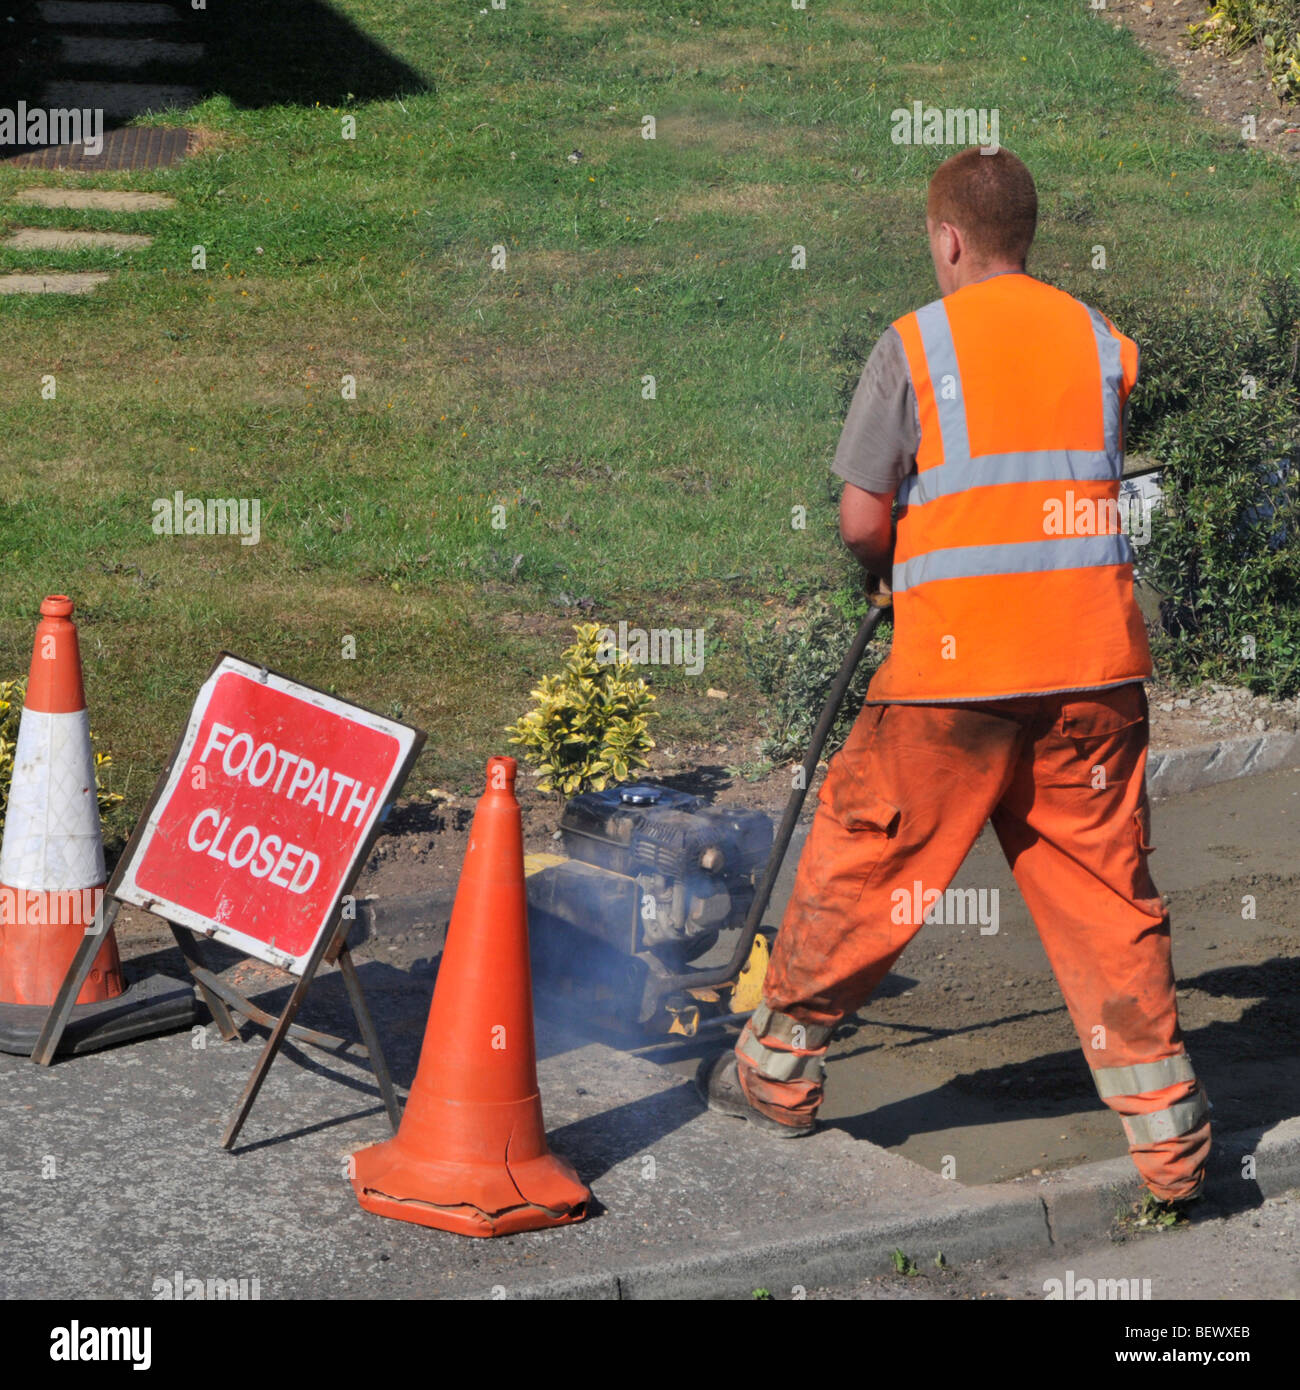 Workmen attending to footpath pavement repairs in residential street Stock Photo